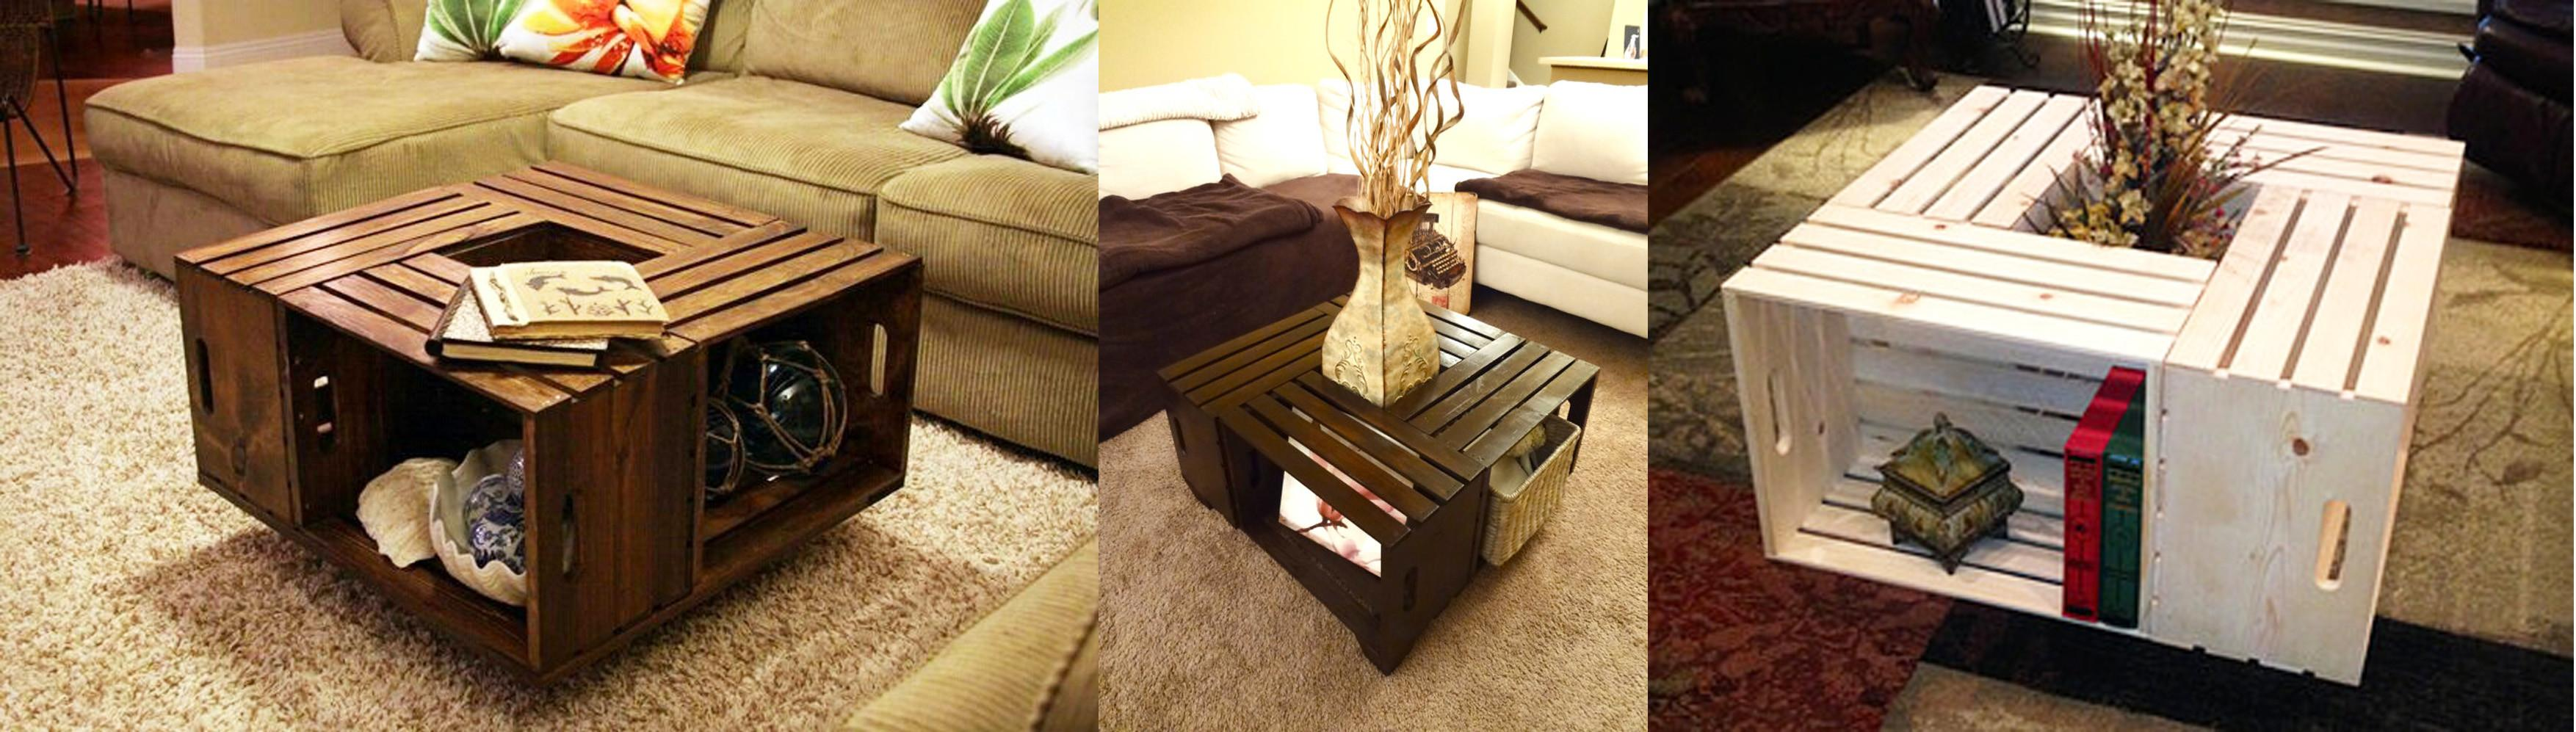 Pallet Coffee Table Diy Cheap Creative Furniture